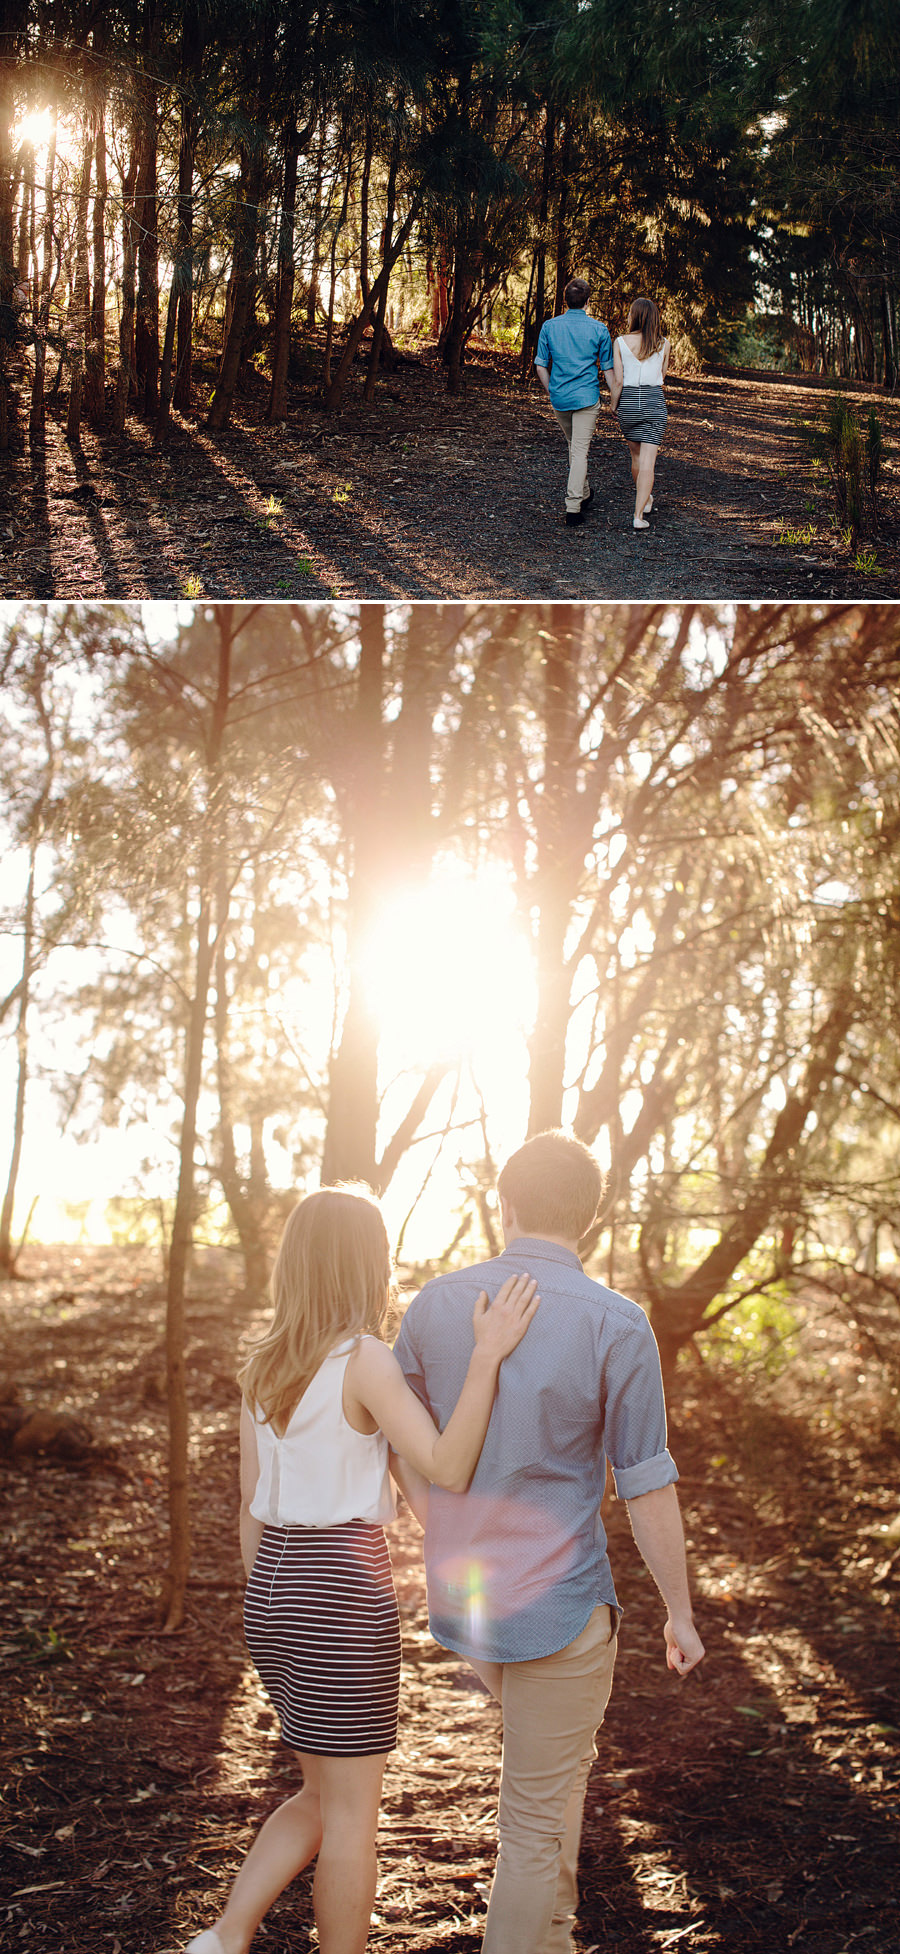 Sydney Park Engagement Photography: Kristyn & Shaun